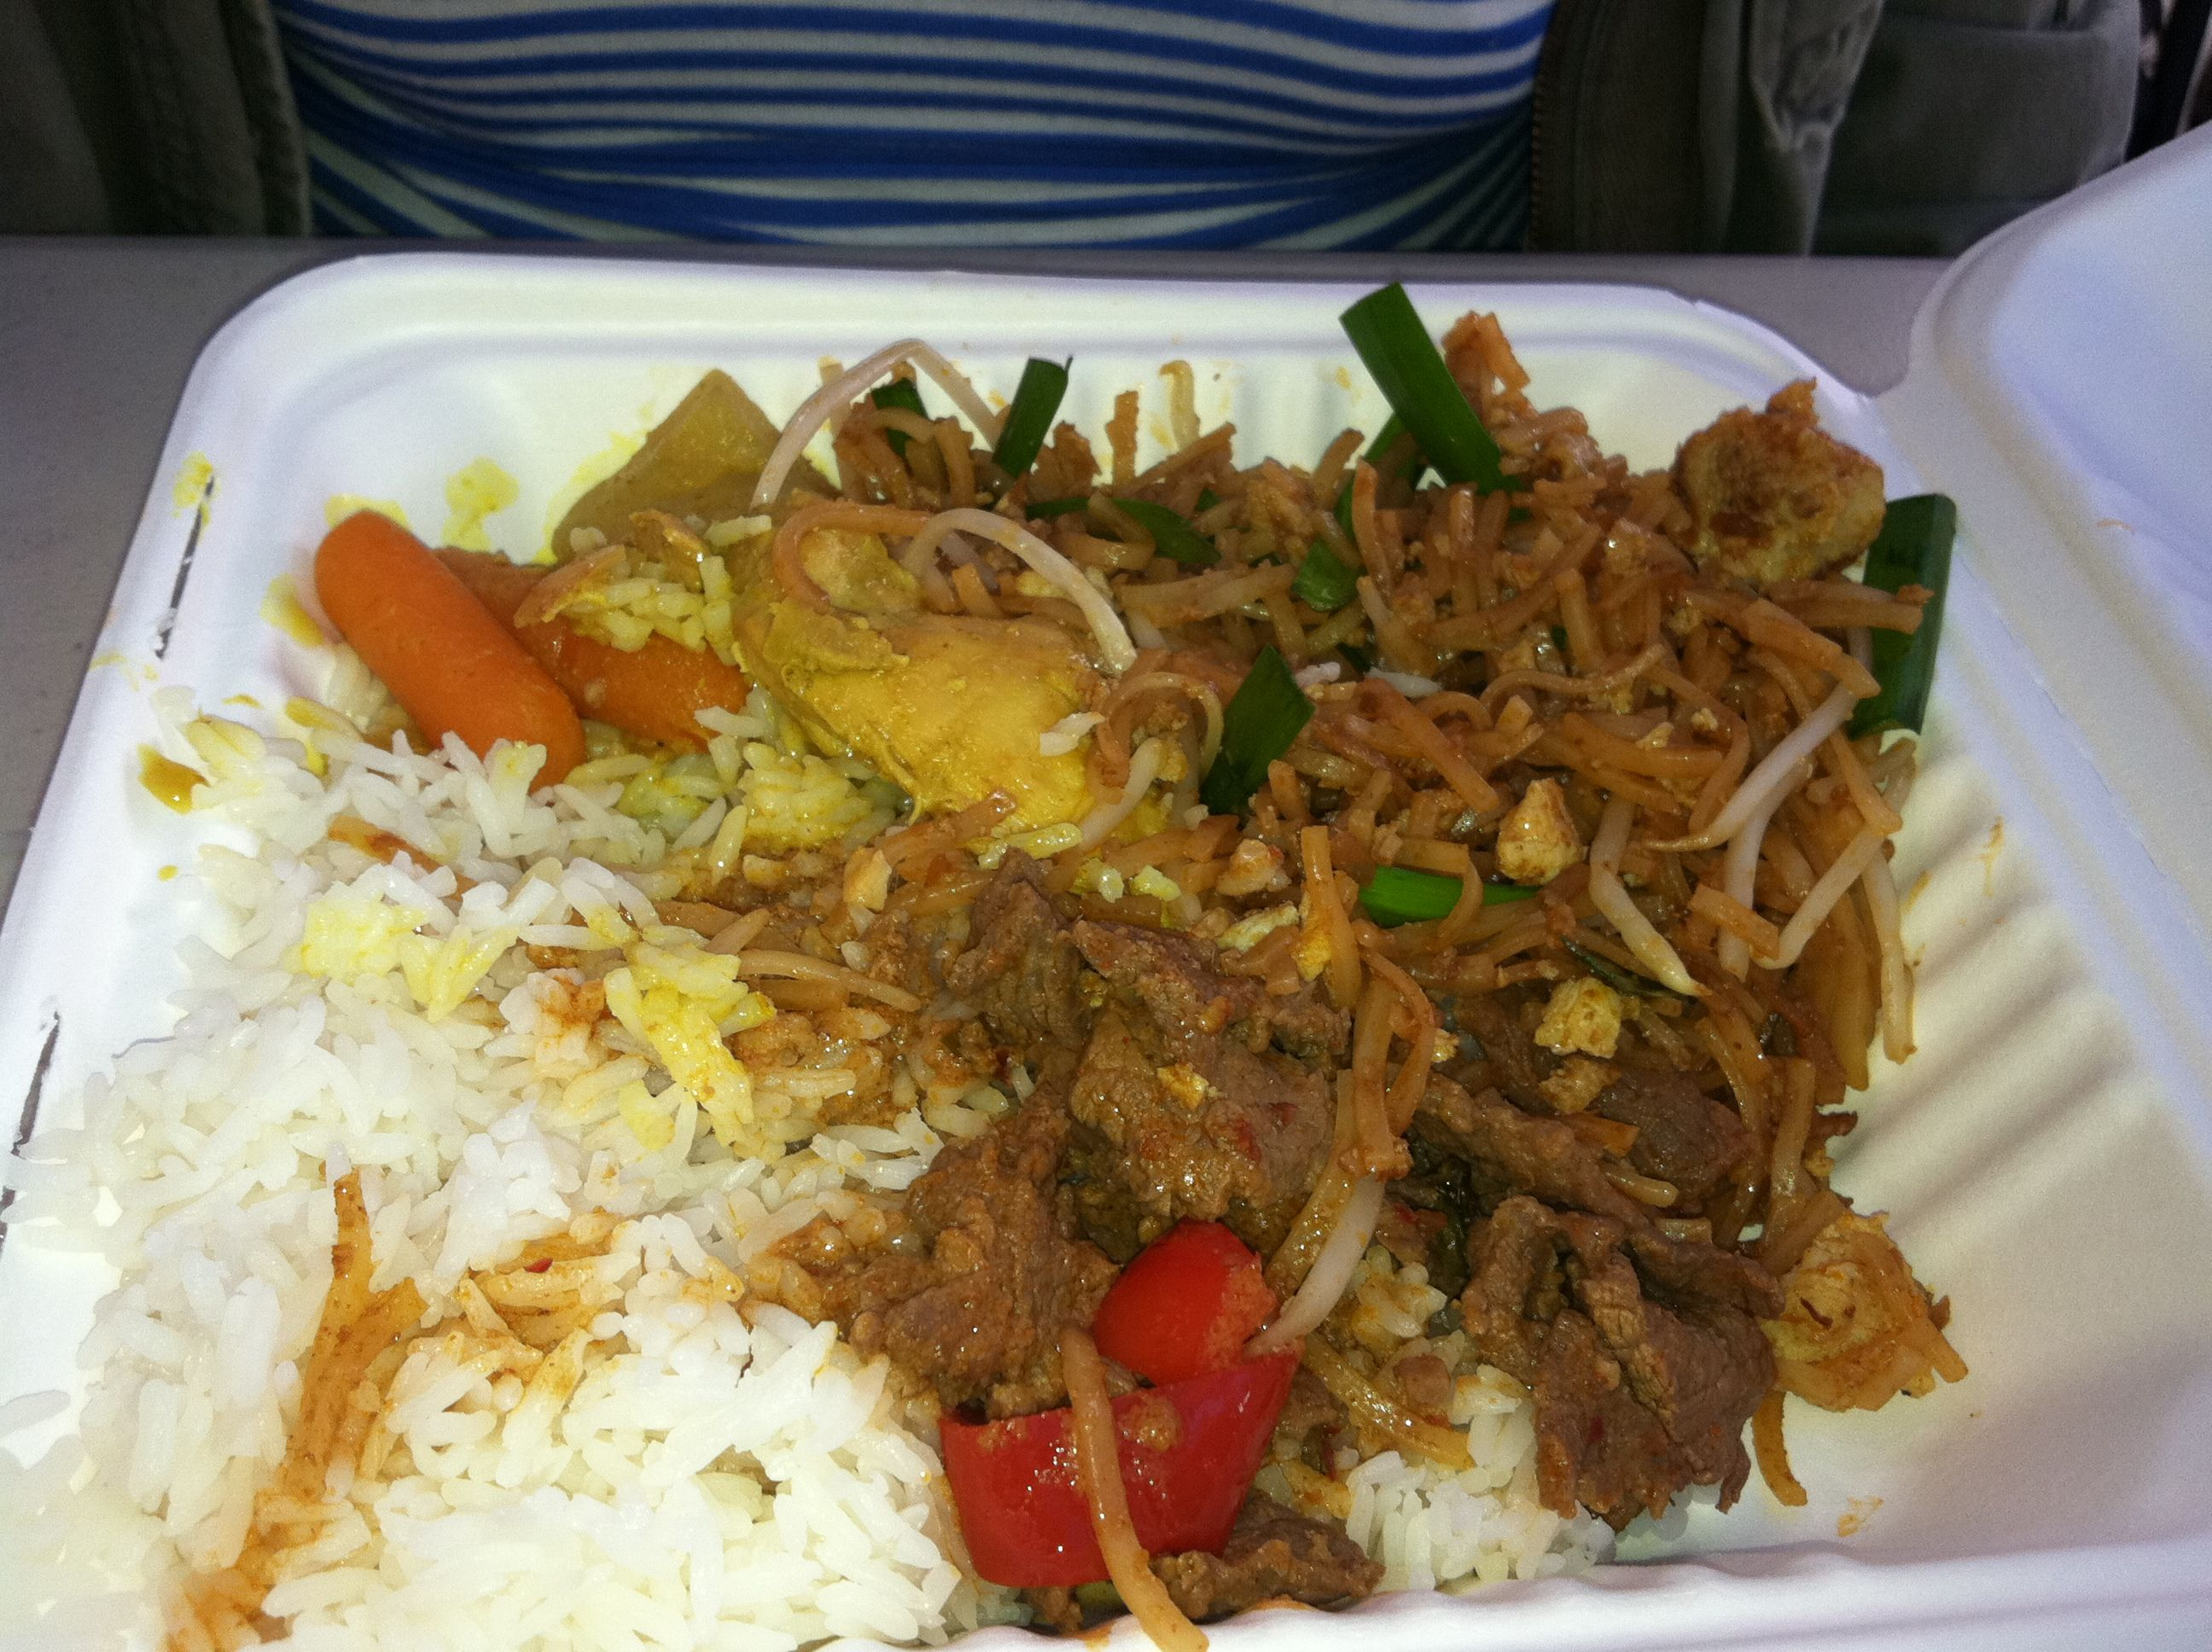 Every sunday the thai temple in berkeley puts on a brunch